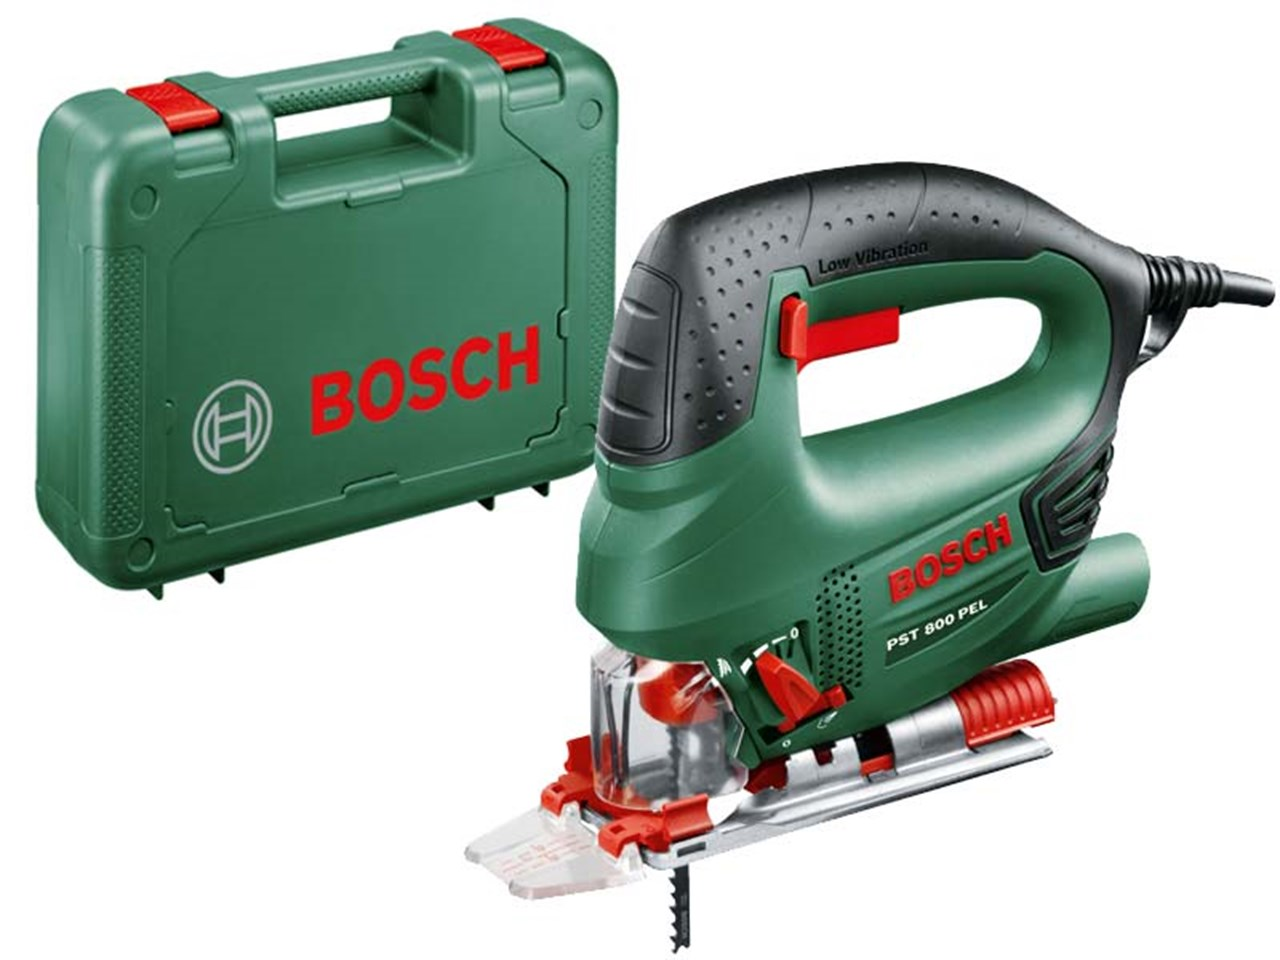 Bosch 1581 Vs jigsaw Owners manual